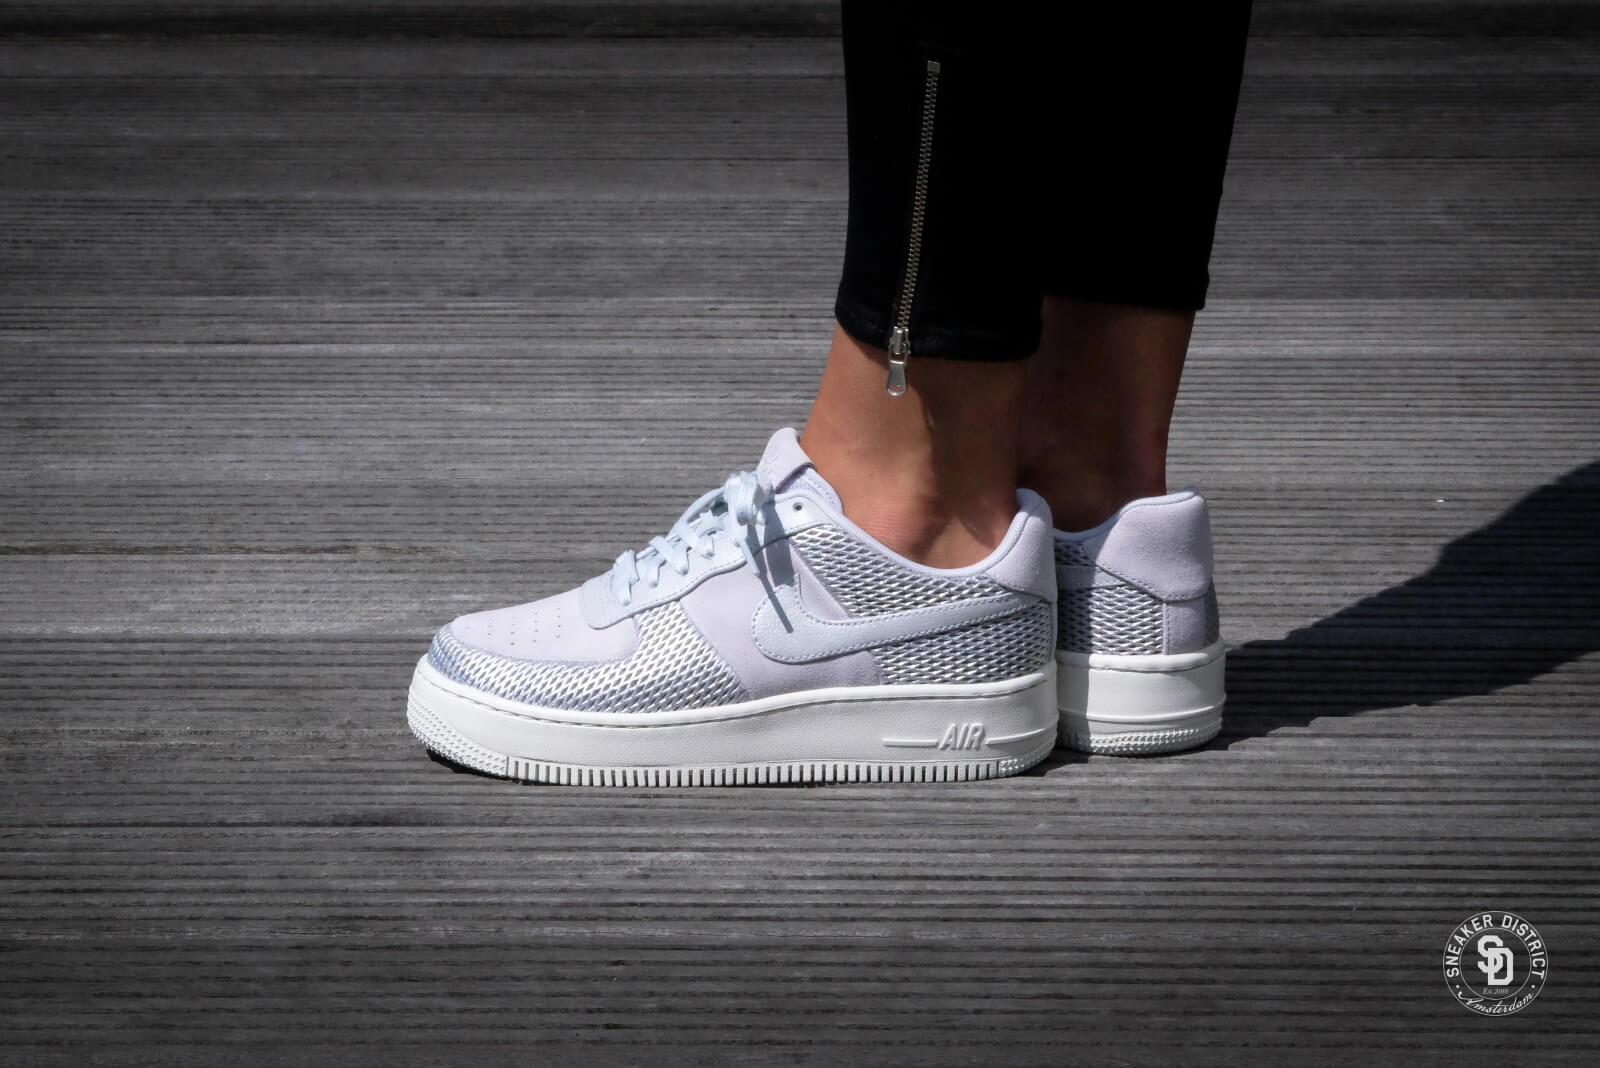 Nike WMNS Air Force 1 Upstep Premium Metallic PlatinumSail 917590 001